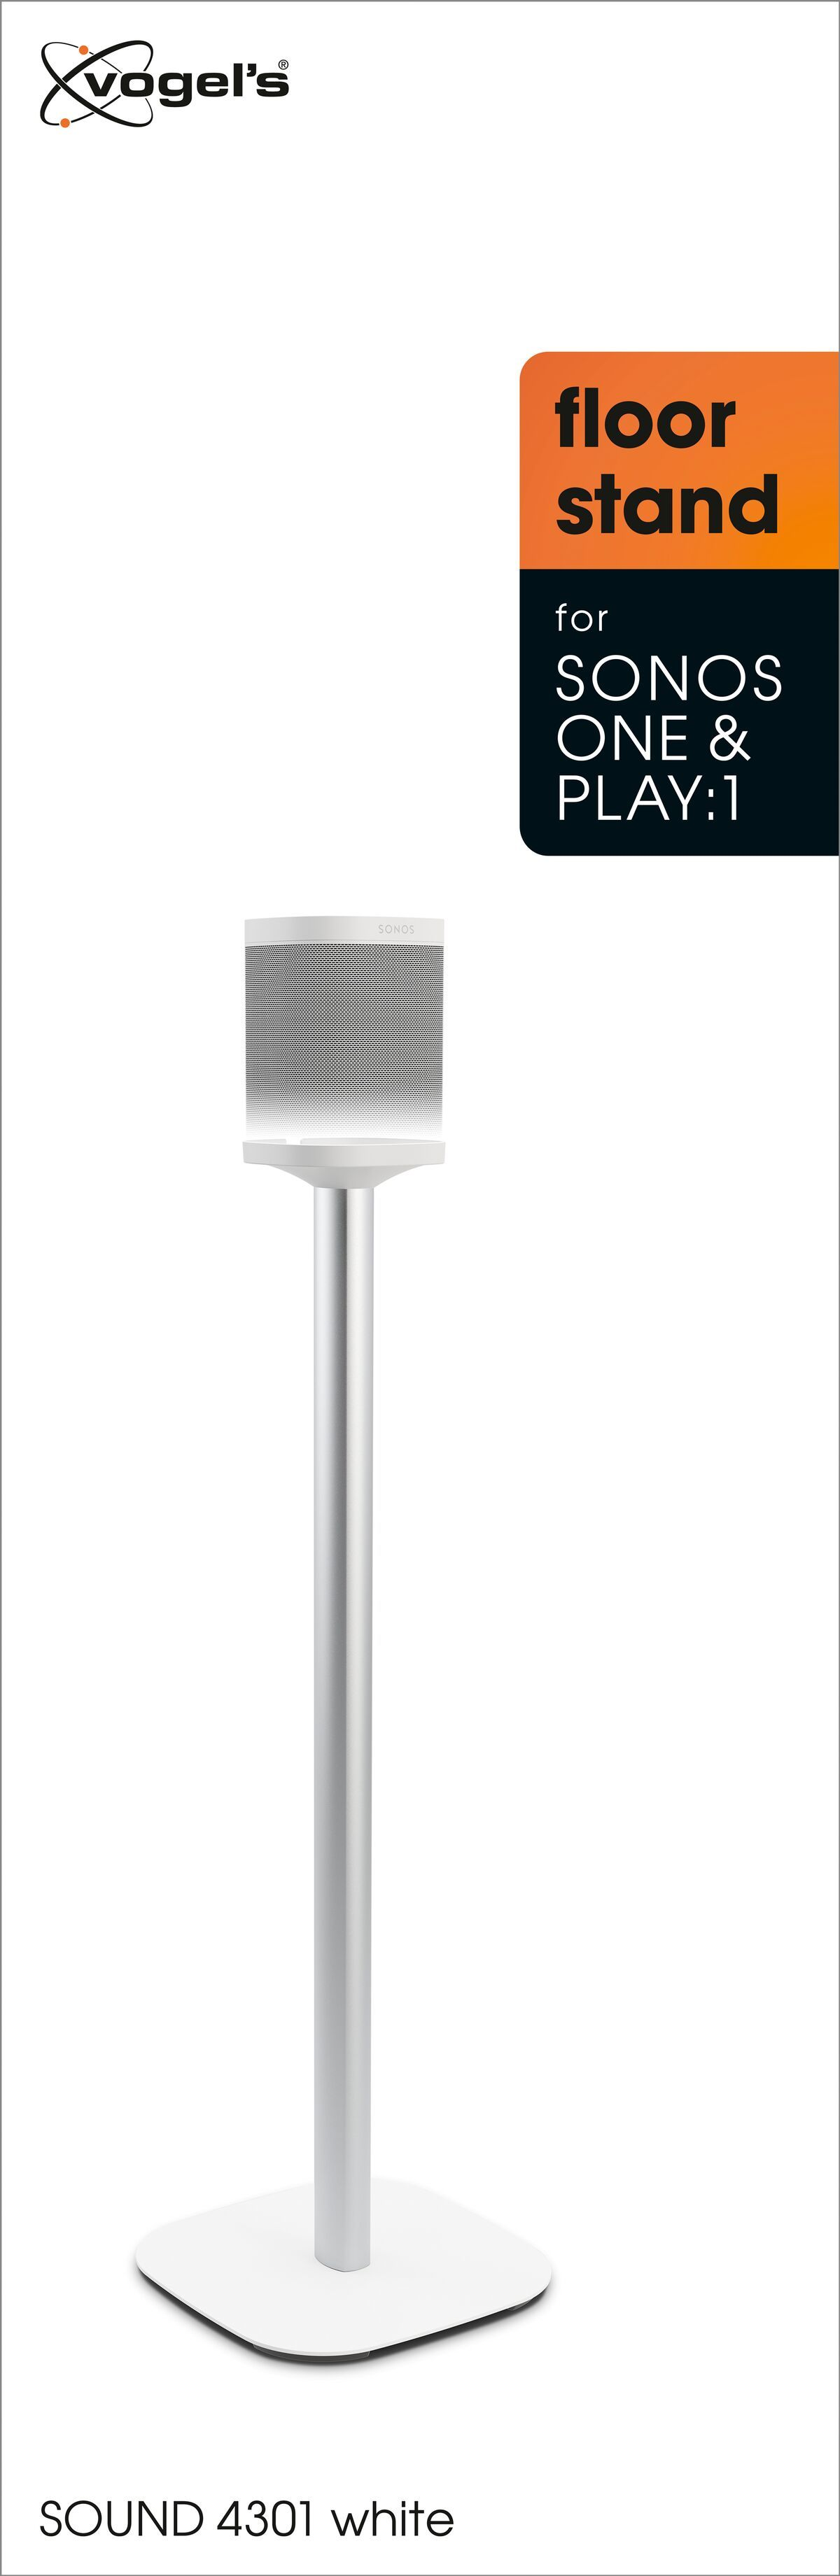 Vogel's SOUND 4301 Speaker stand for SONOS ONE (SL) & PLAY:1 (white) - Packaging front